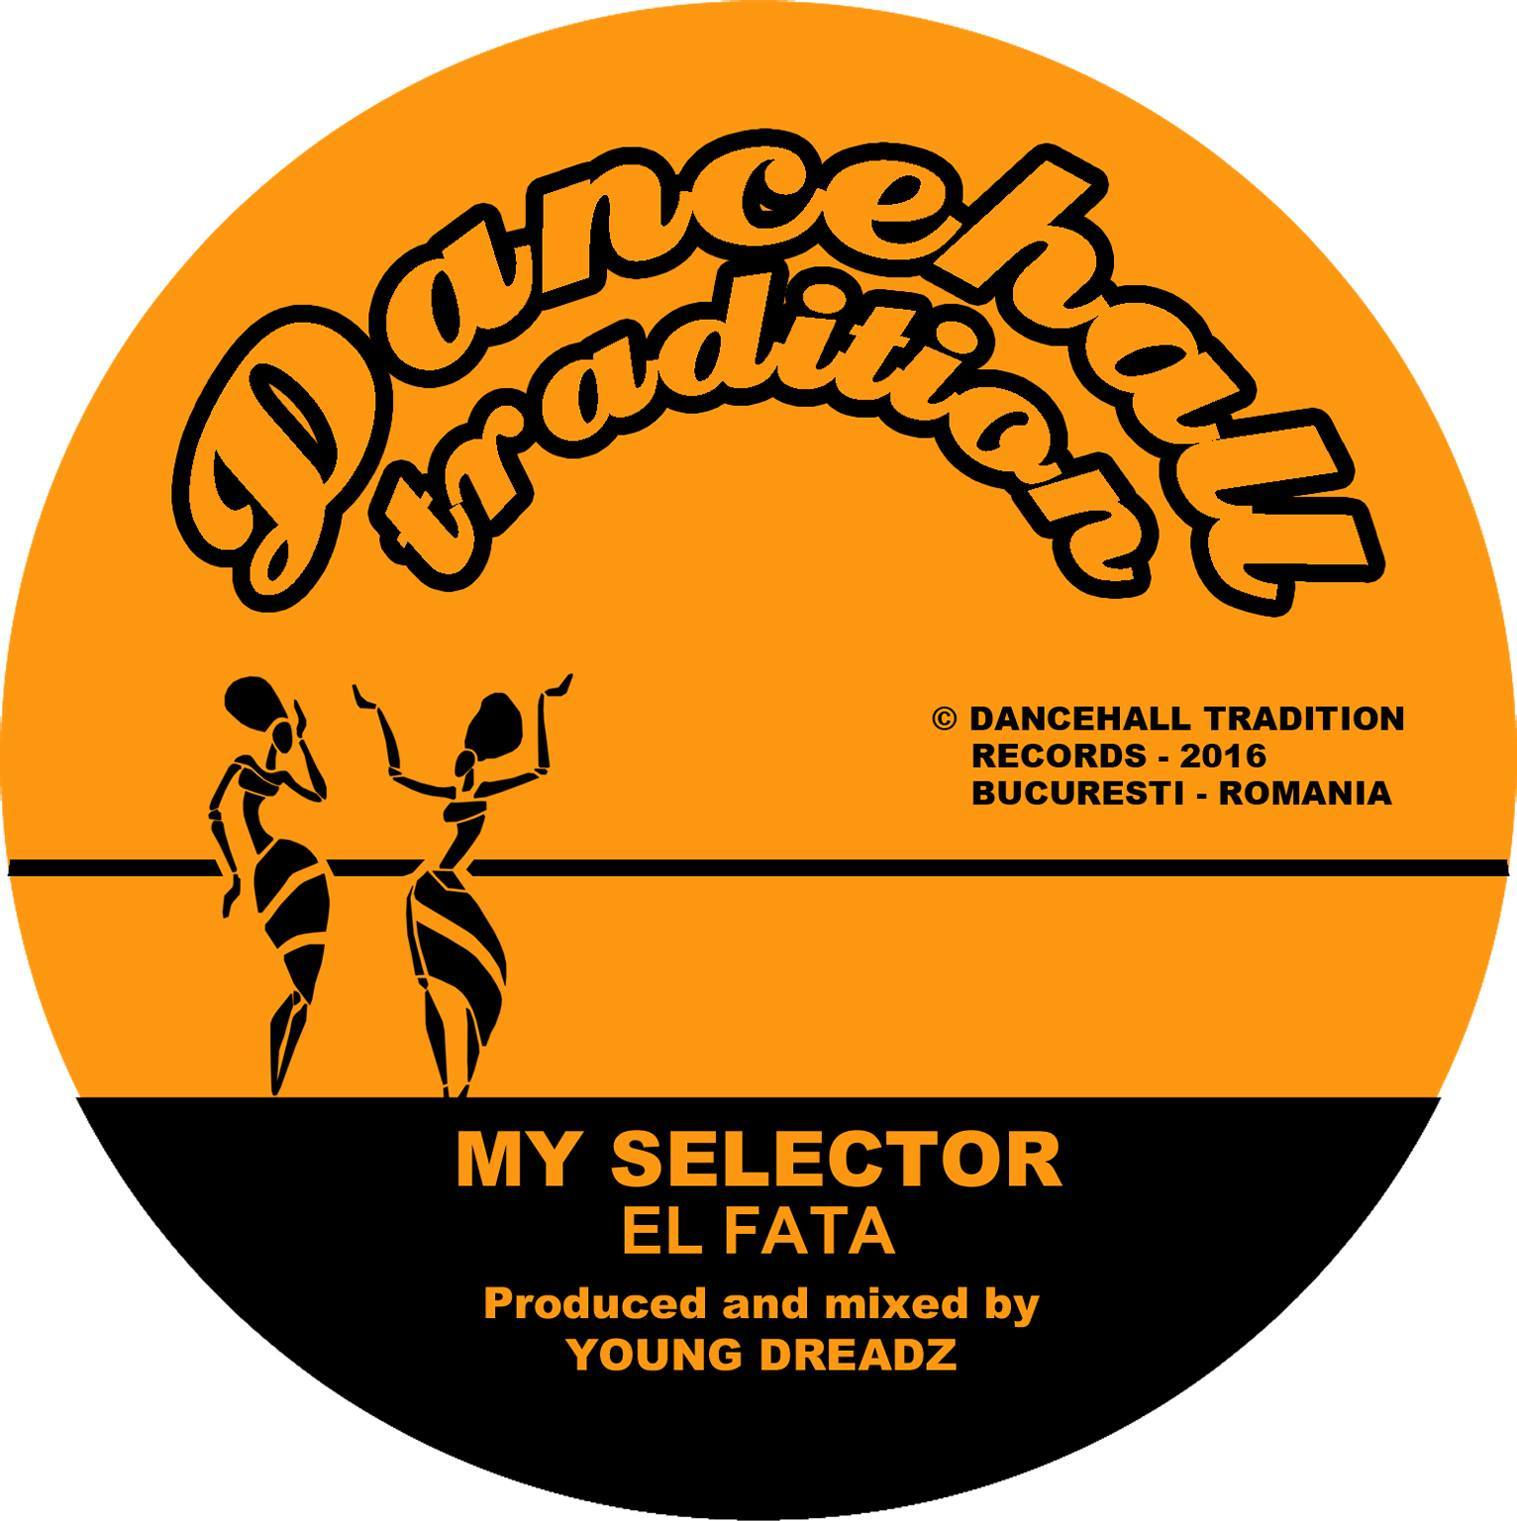 el-fata-my-selector-dancehall-tradition-DT7001